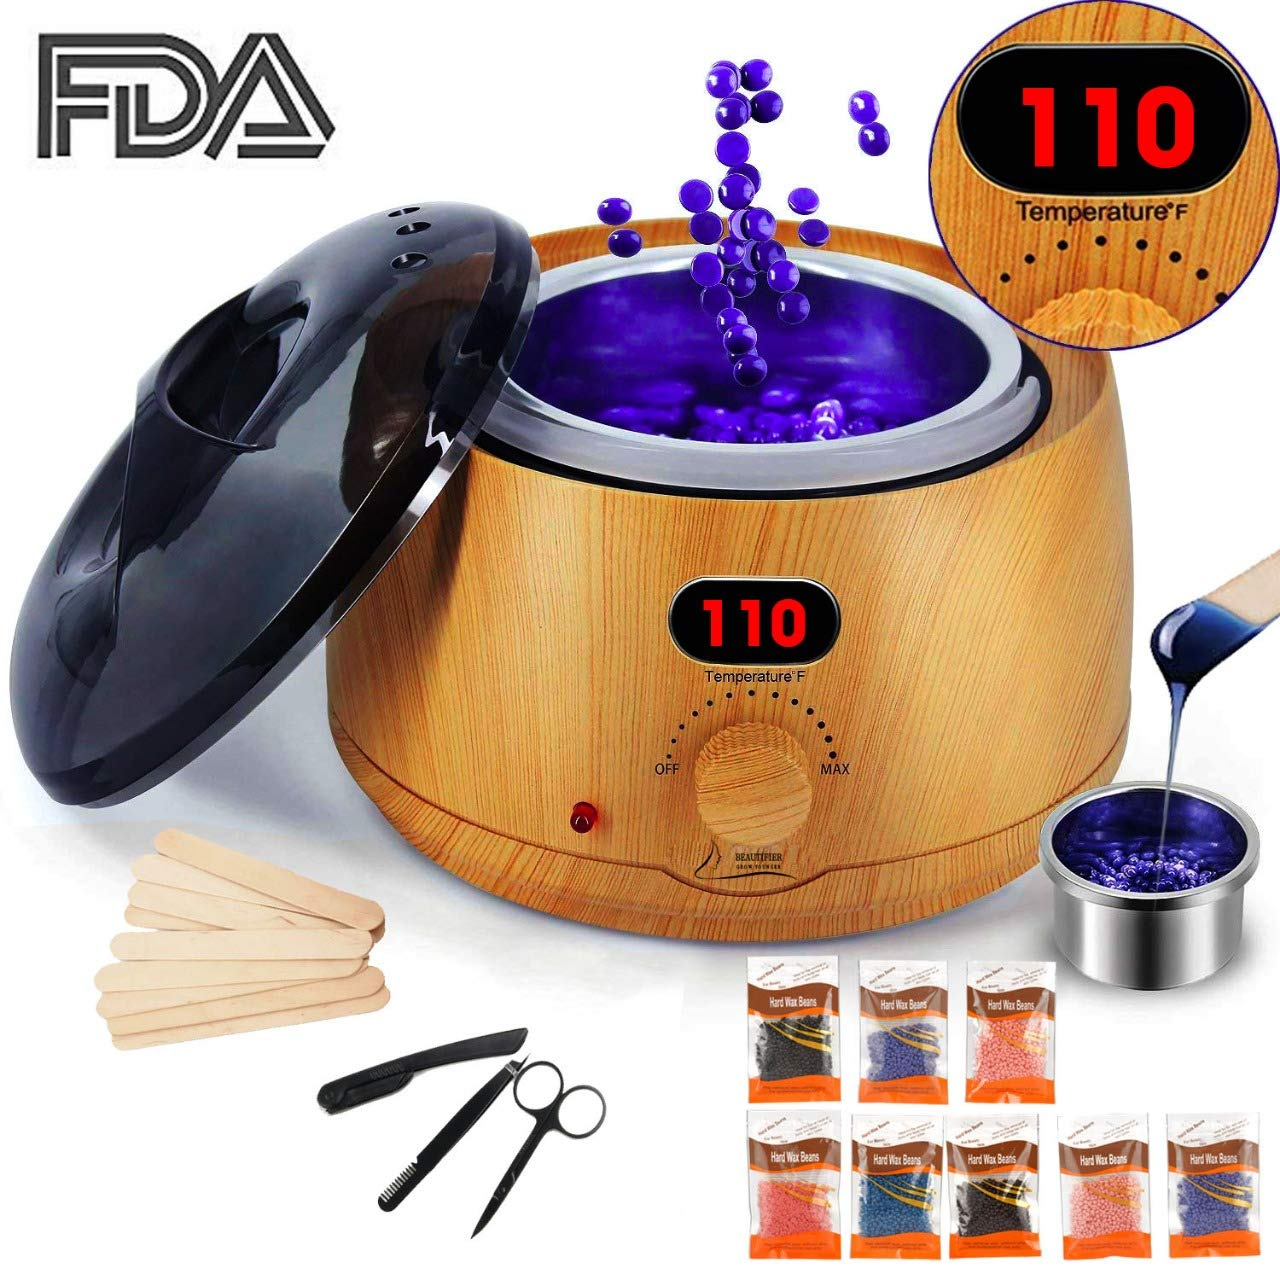 Waxing kit wax warmer hard wax beans digital hair removing set – 8 packs wax beans + Eyebrow razor 30Pcs complete set 2 years warranty SAK Trades